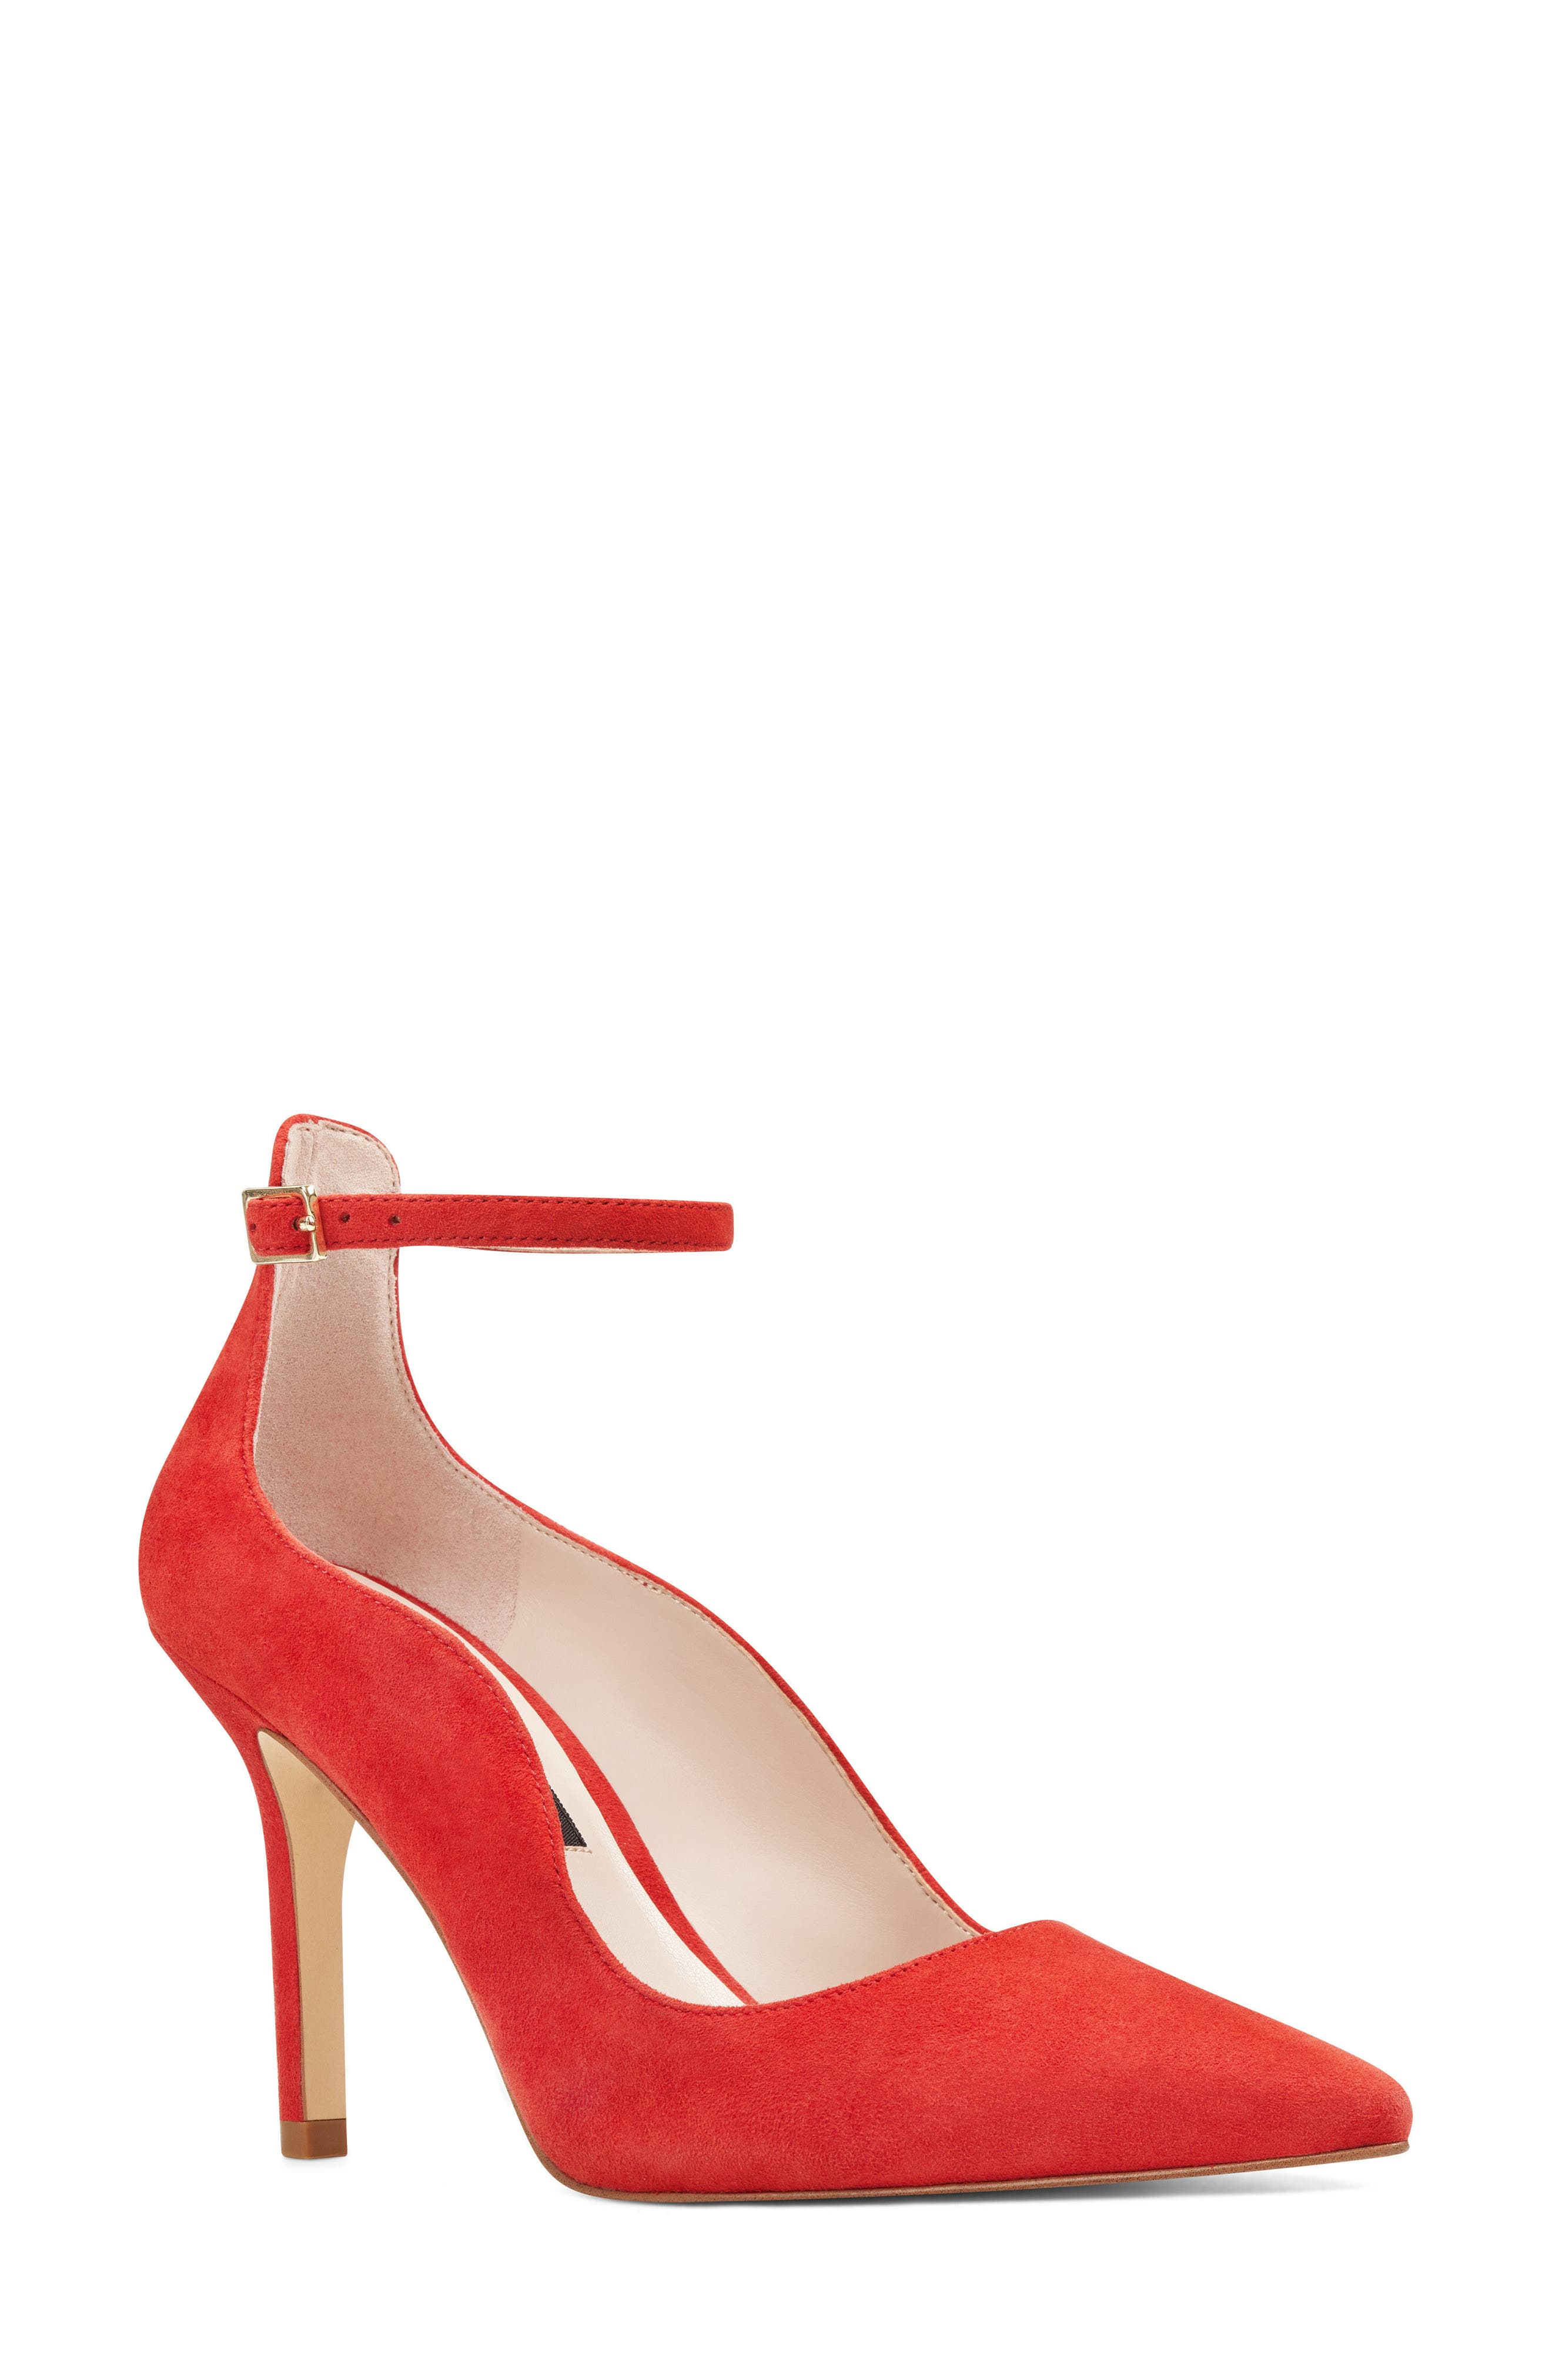 Marquisha Scalloped Ankle Strap Pump,                             Main thumbnail 1, color,                             Red Suede